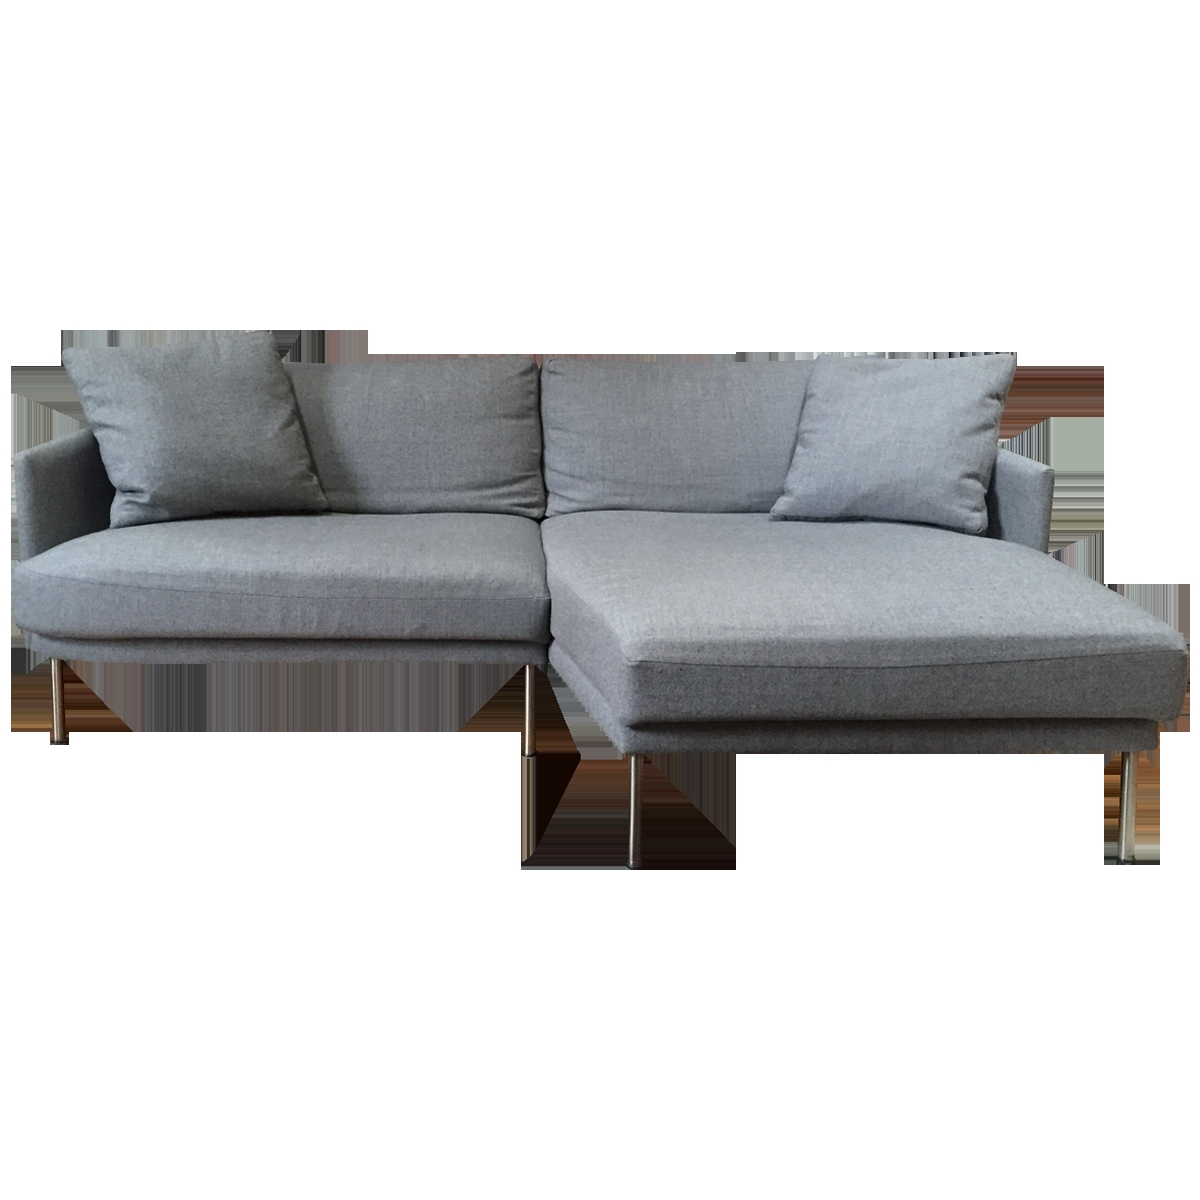 Viyet Designer Furniture Seating Design Within Reach Camber In Compact Sectional Sofas (Image 15 of 15)